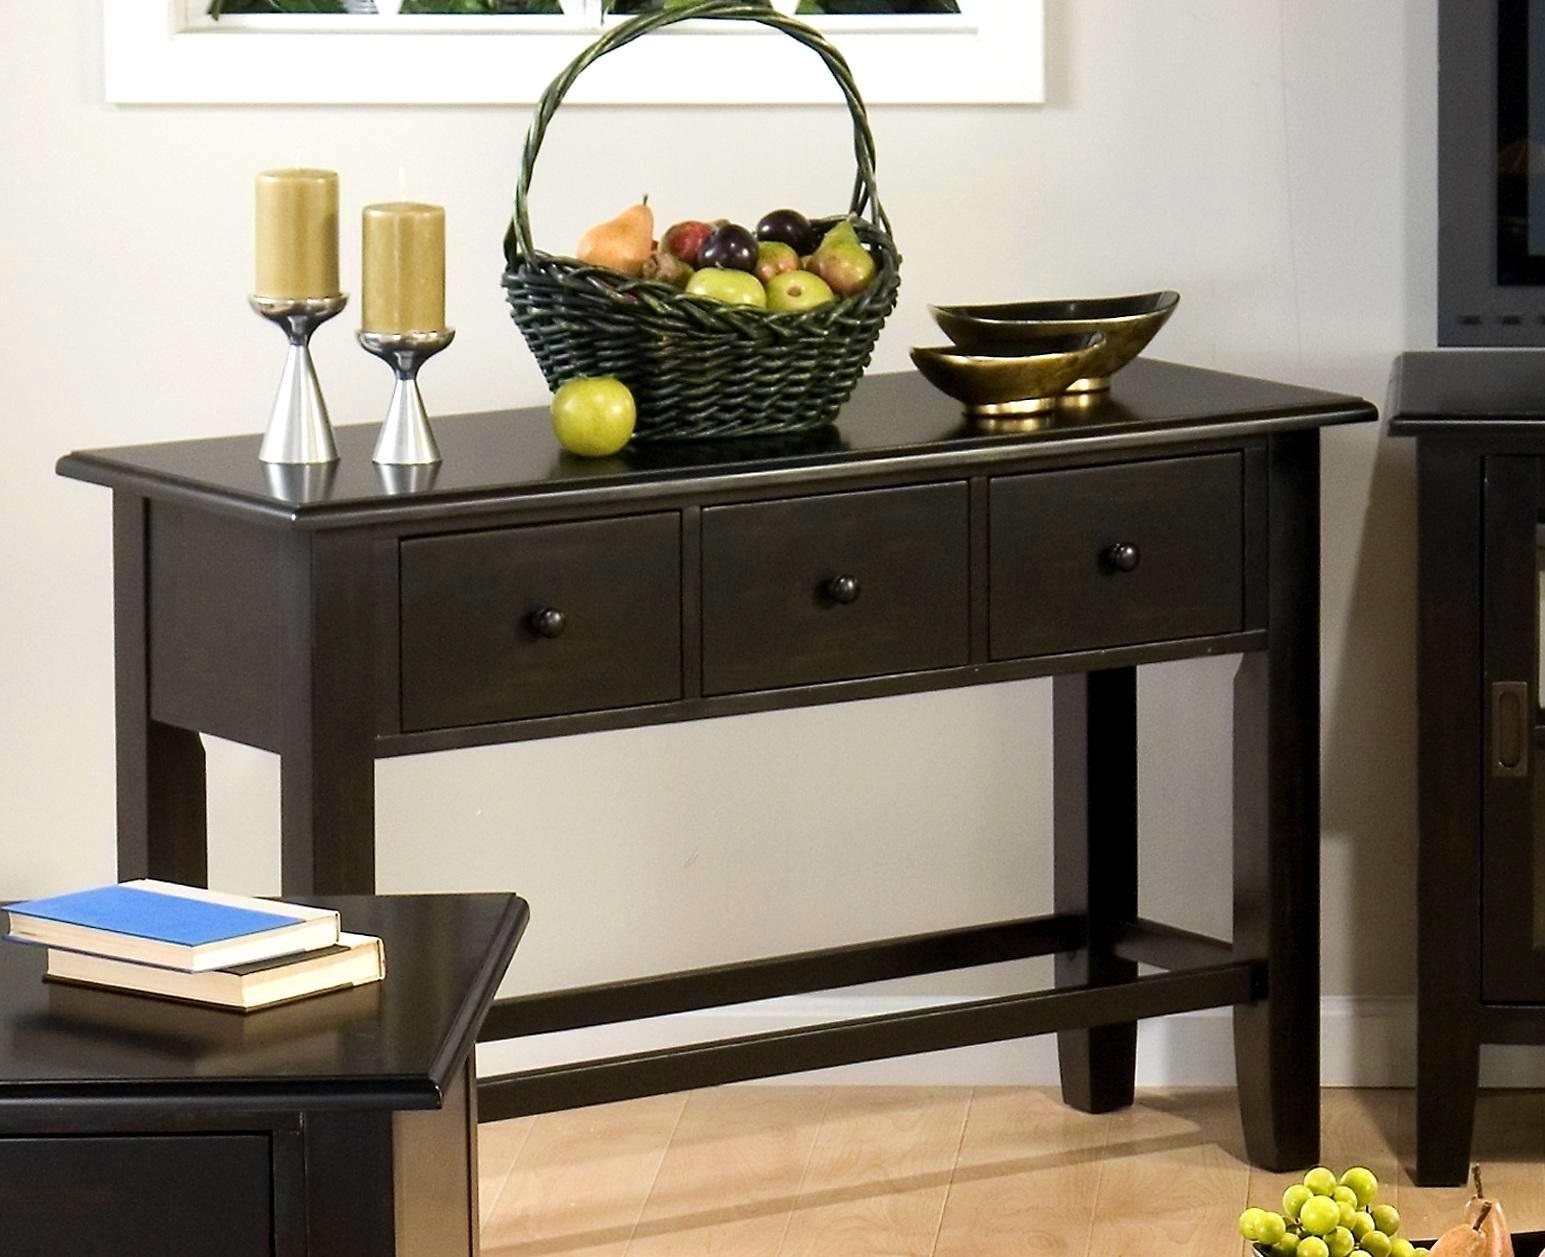 Black Sofa Table With Drawers | Sofa Gallery | Kengire With Sofa Table Drawers (View 19 of 20)